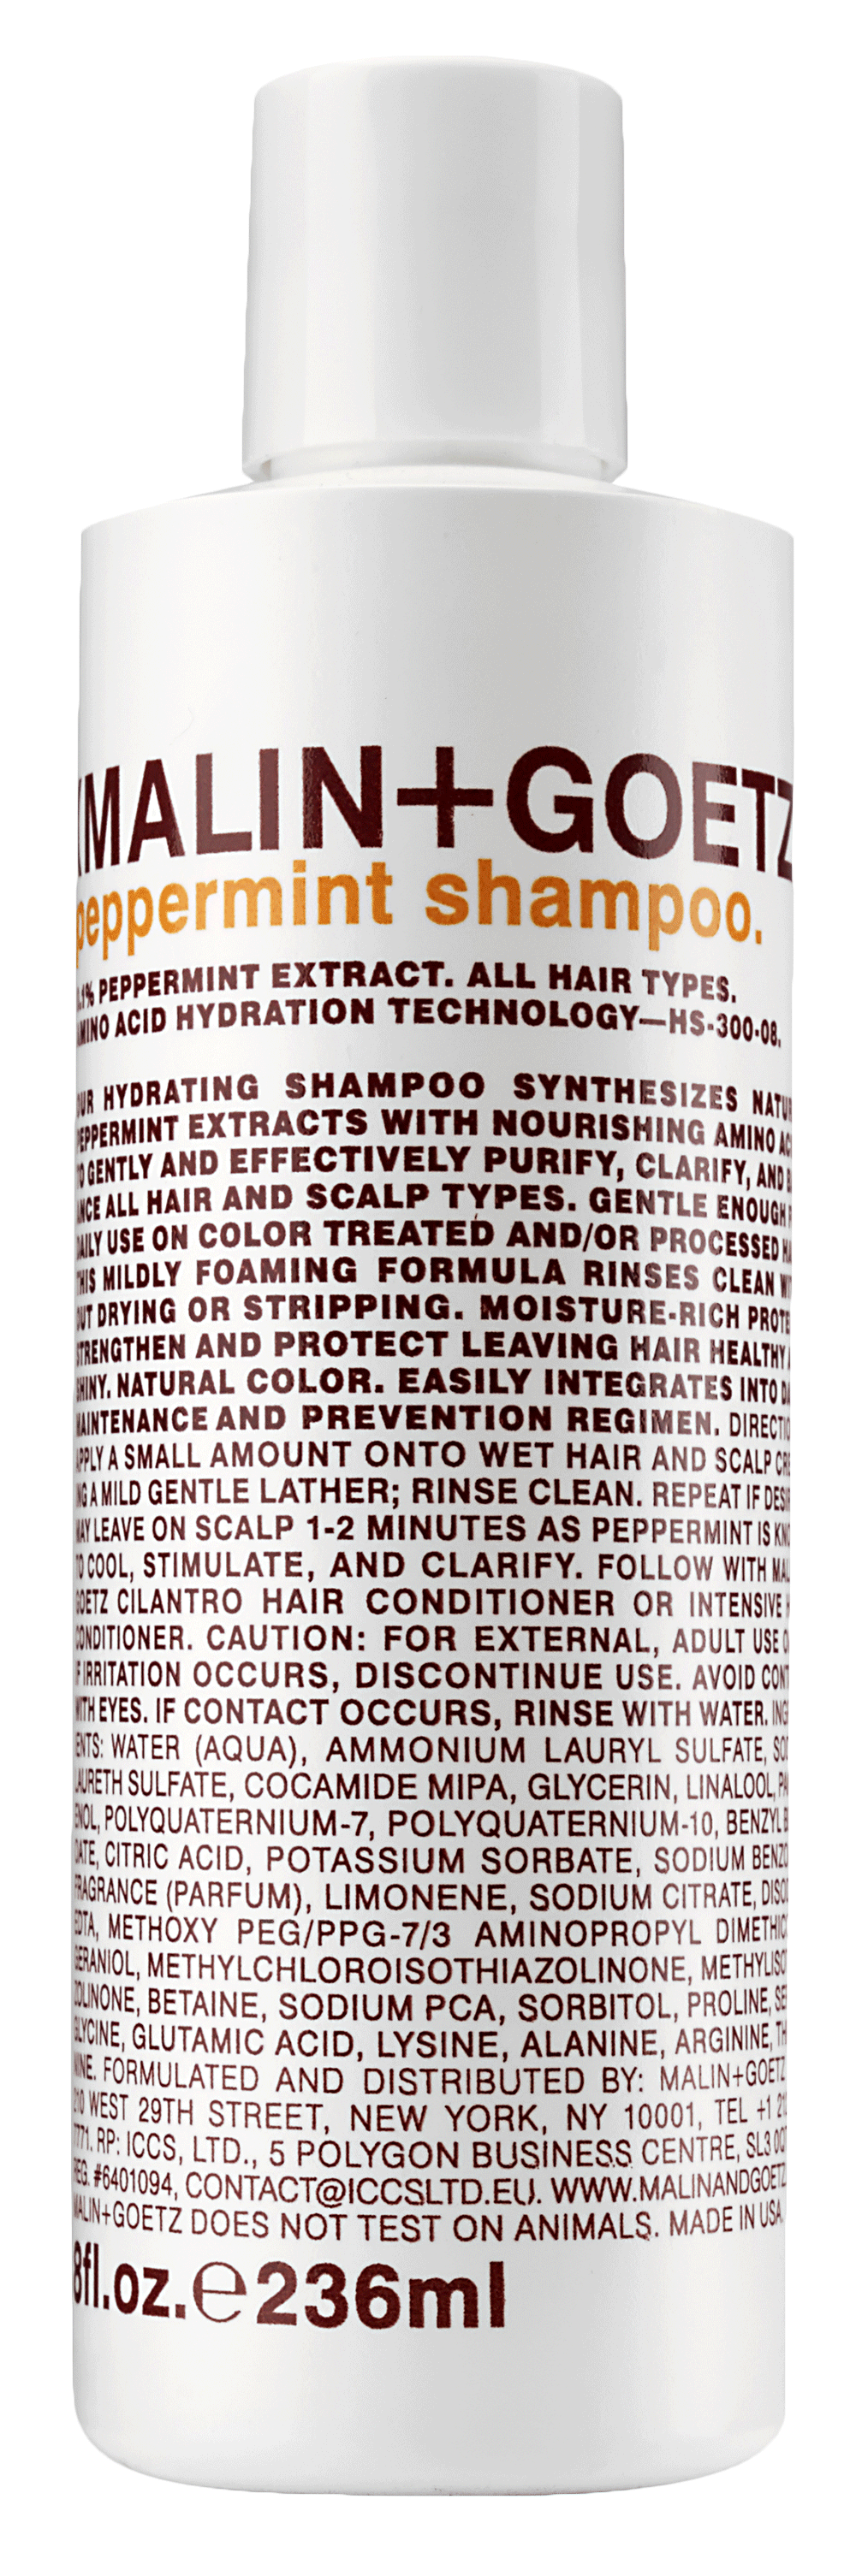 Peppermint Shampoo 8oz.png